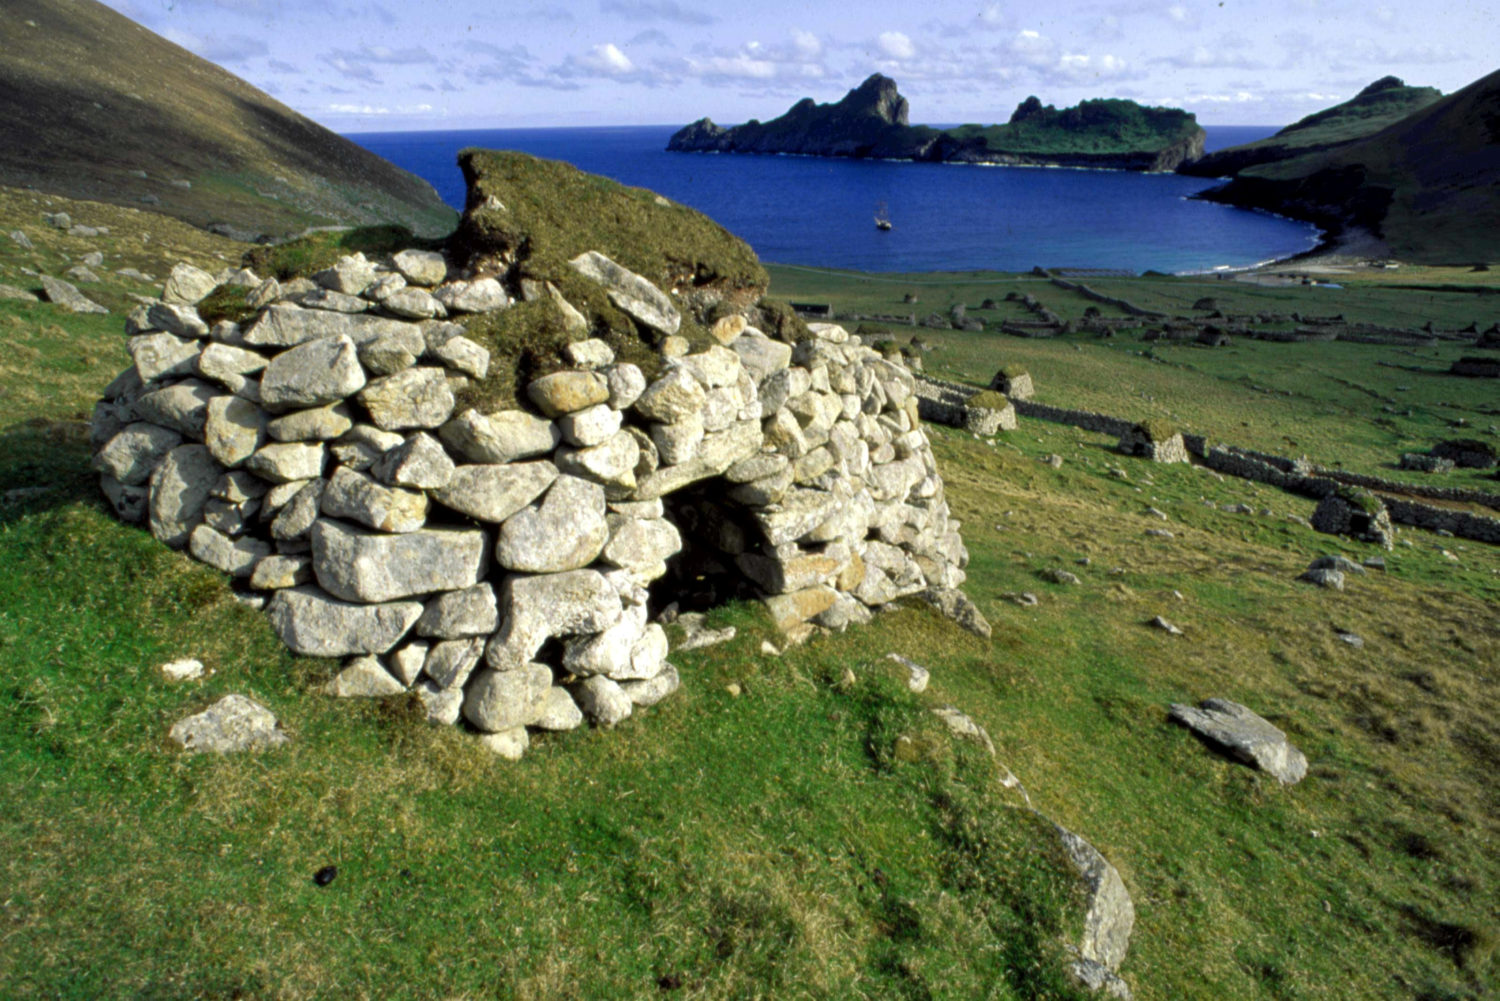 Staff wanted to work on remote island of St Kilda